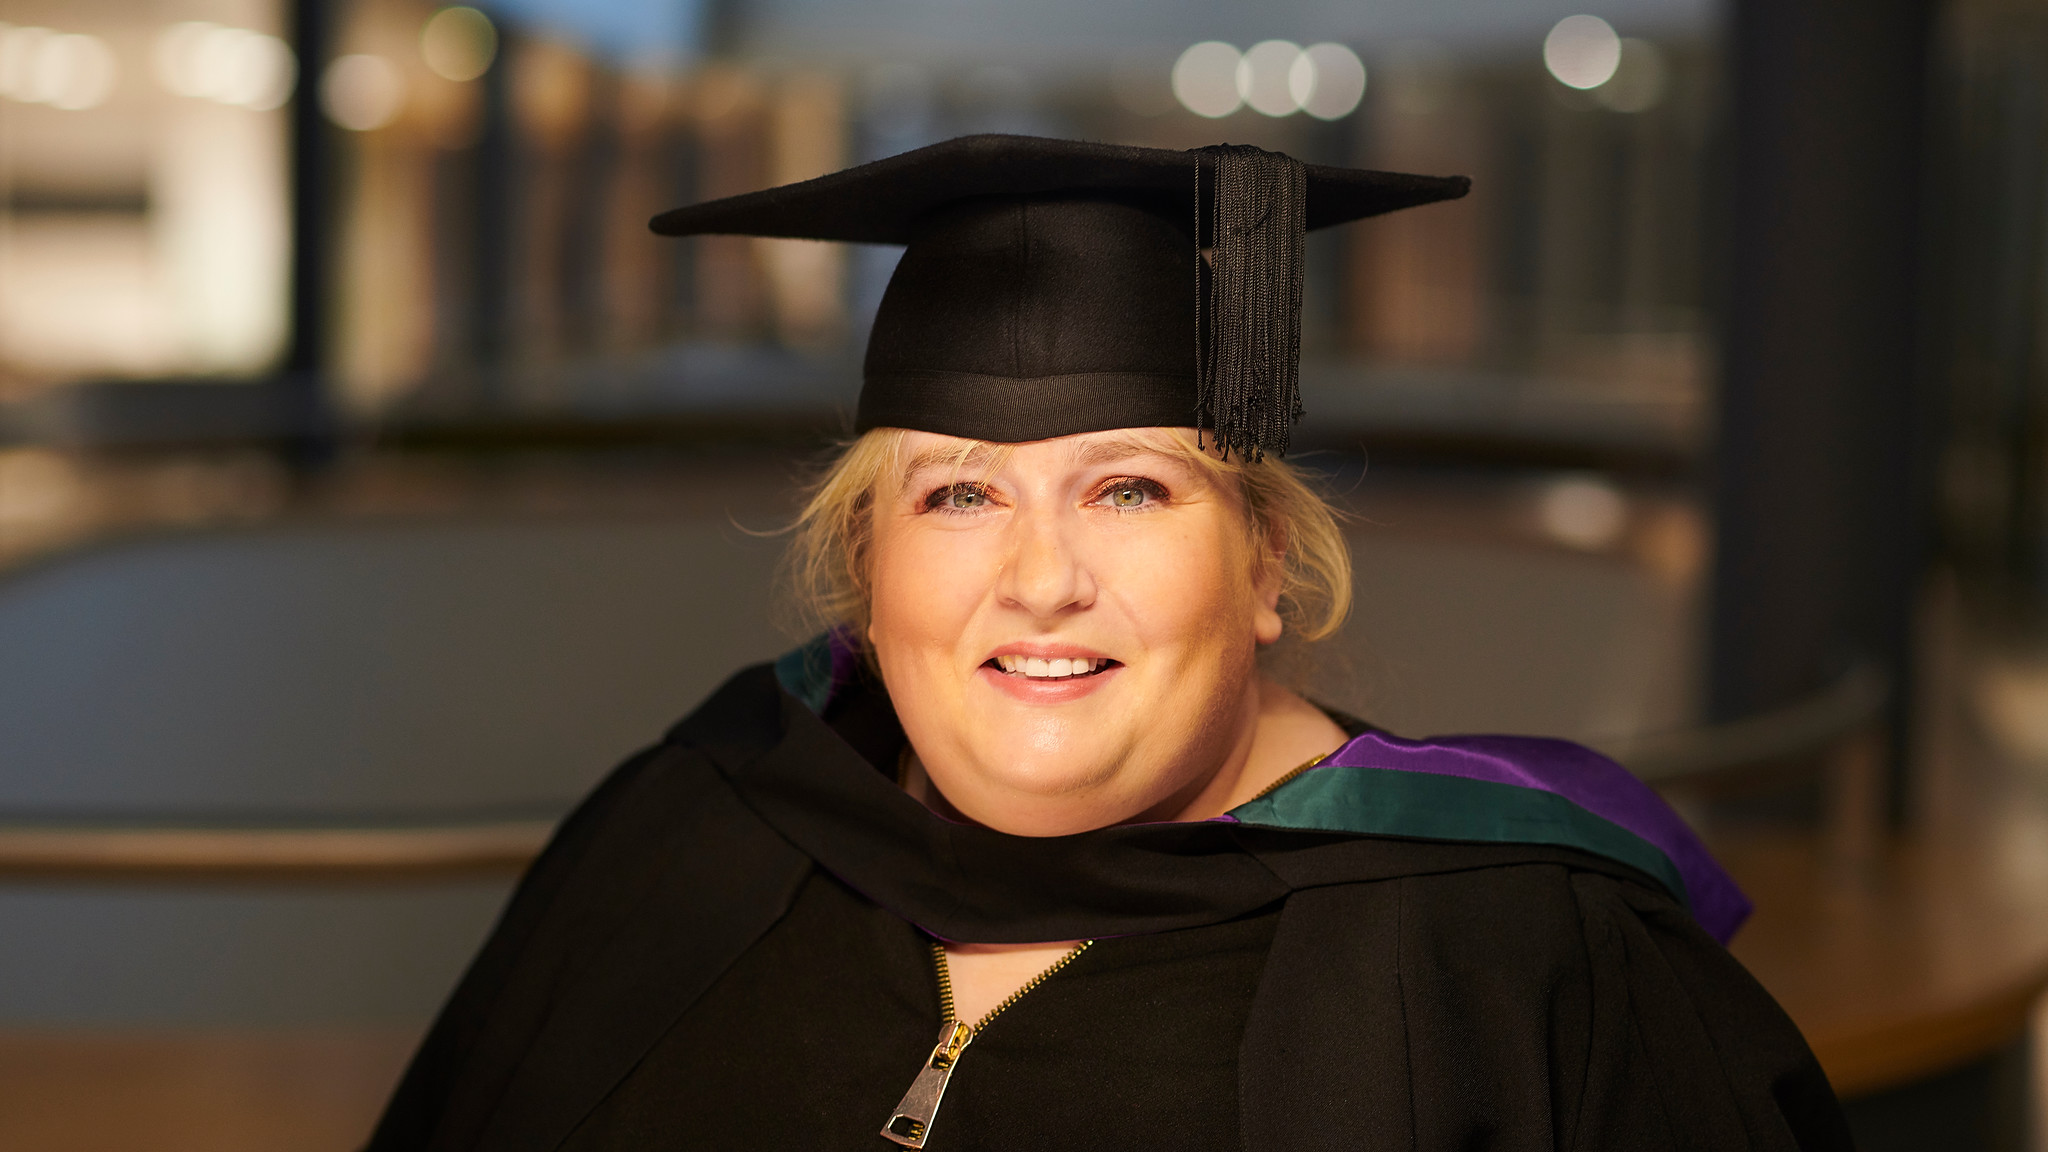 , Going back to University inspired a lifelong love of learning for Ormskirk student, Skem News - The Top Source for Skelmersdale News